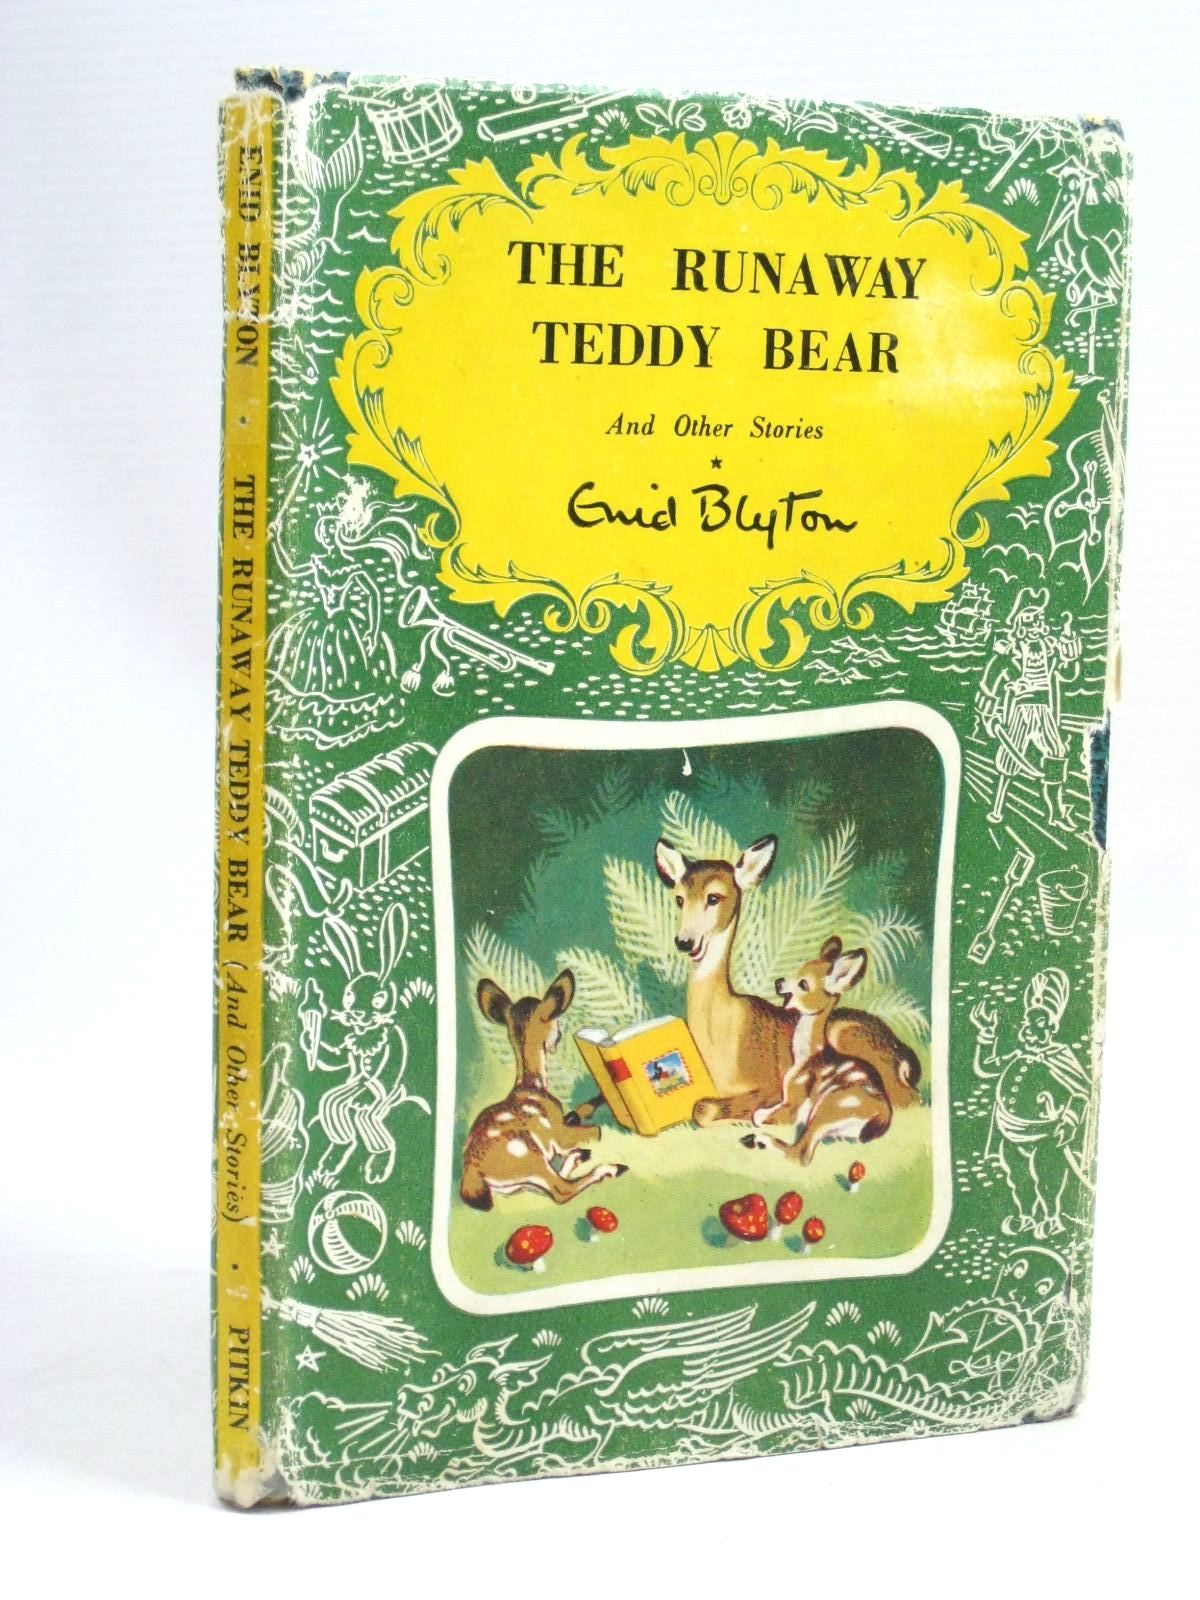 Photo of THE RUNAWAY TEDDY BEAR AND OTHER STORIES written by Blyton, Enid published by Pitkin (STOCK CODE: 1315843)  for sale by Stella & Rose's Books